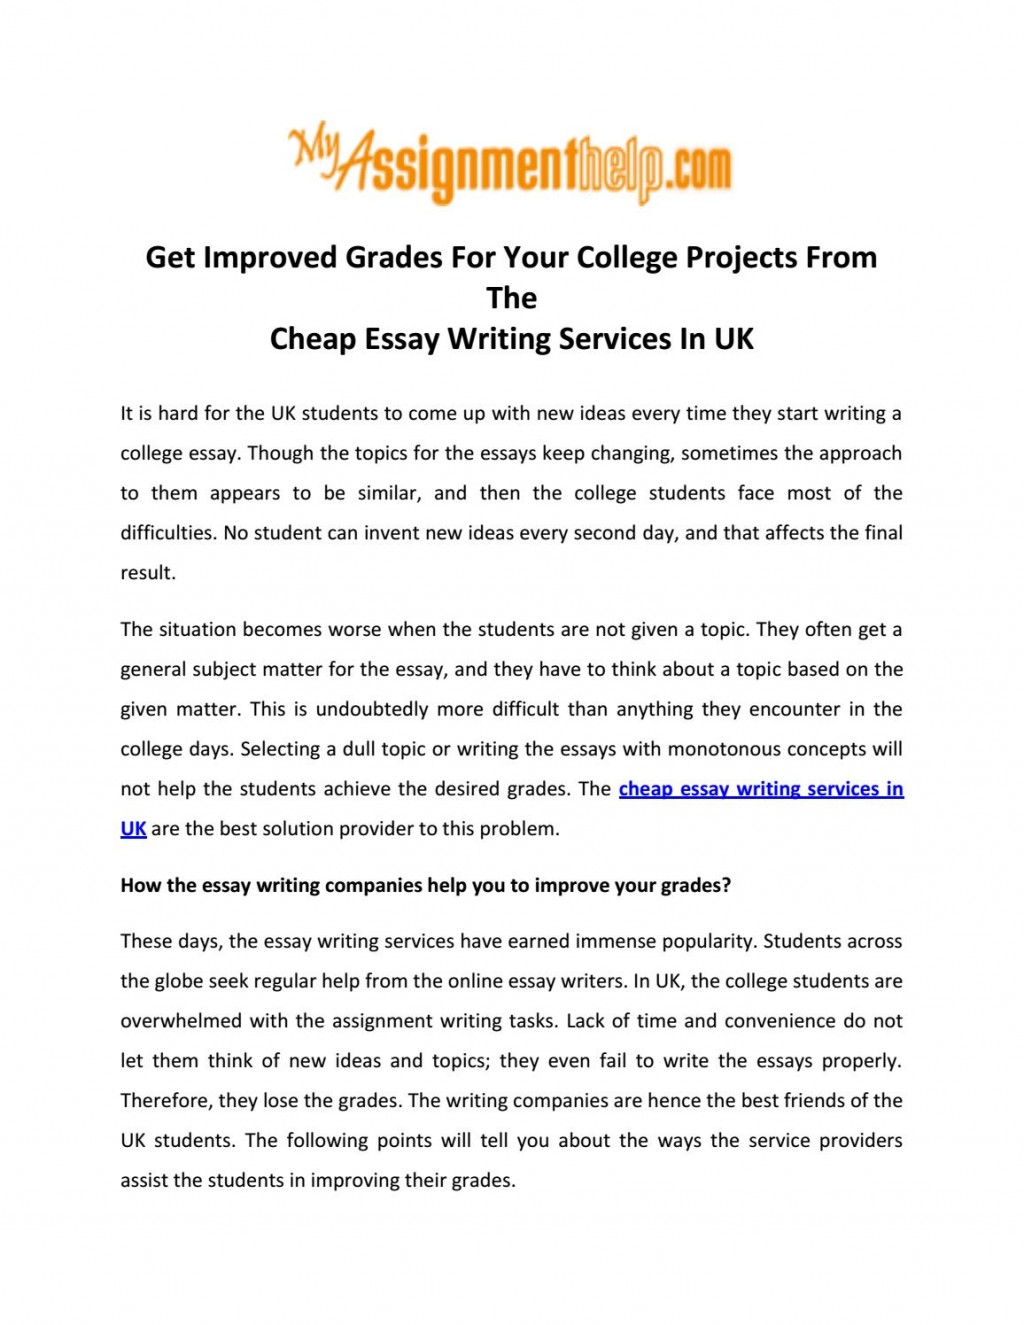 011 Page 1 Essay Example Cheap Writing Unusual Service Review Singapore Large